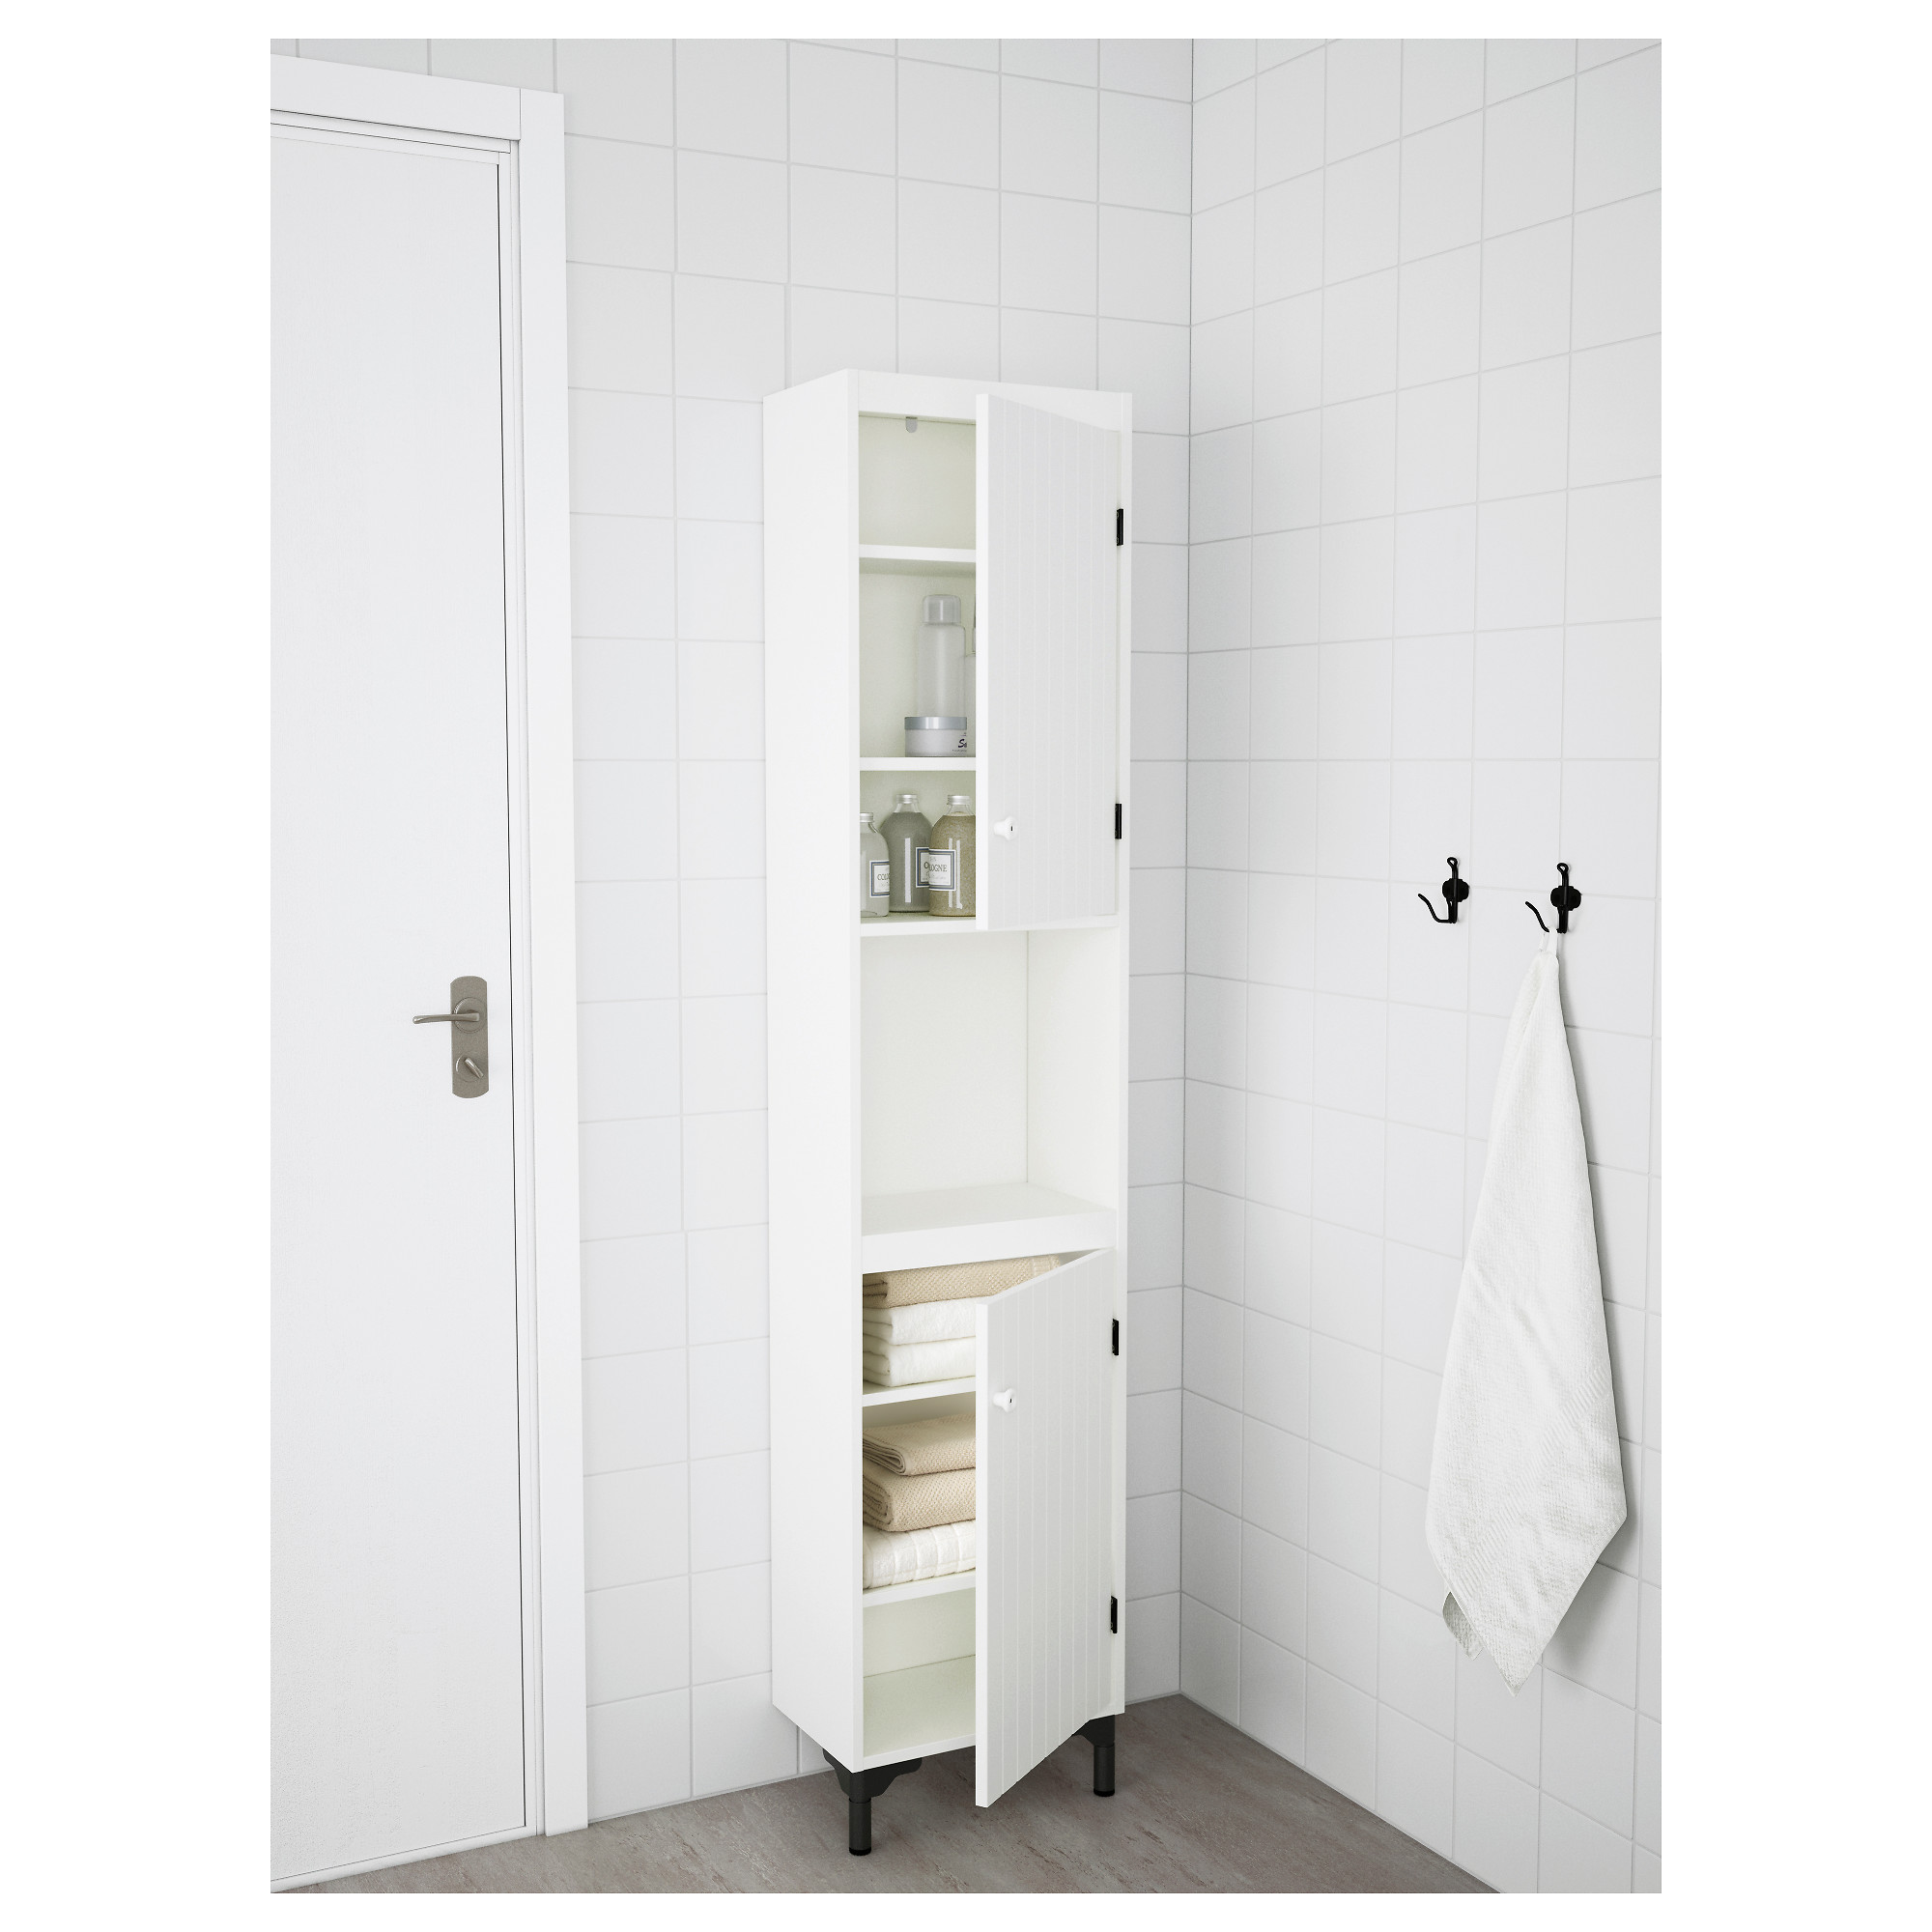 Ikea armoire 2 portes awesome armoire miroir ikea amazing for Miroir walmart